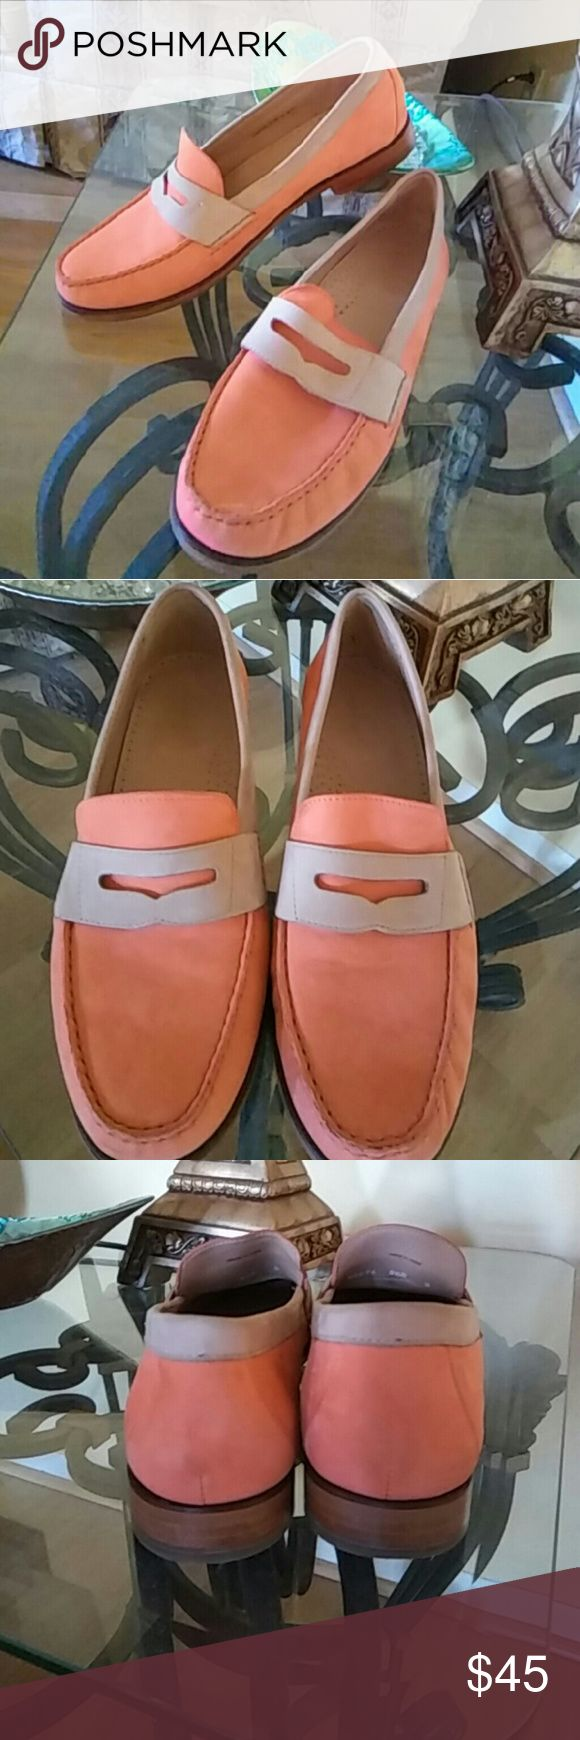 Cole Haan Nubuck Leather Loafers Natural leather. Superb condition.  Virtually like new. Cole Haan Shoes Flats & Loafers